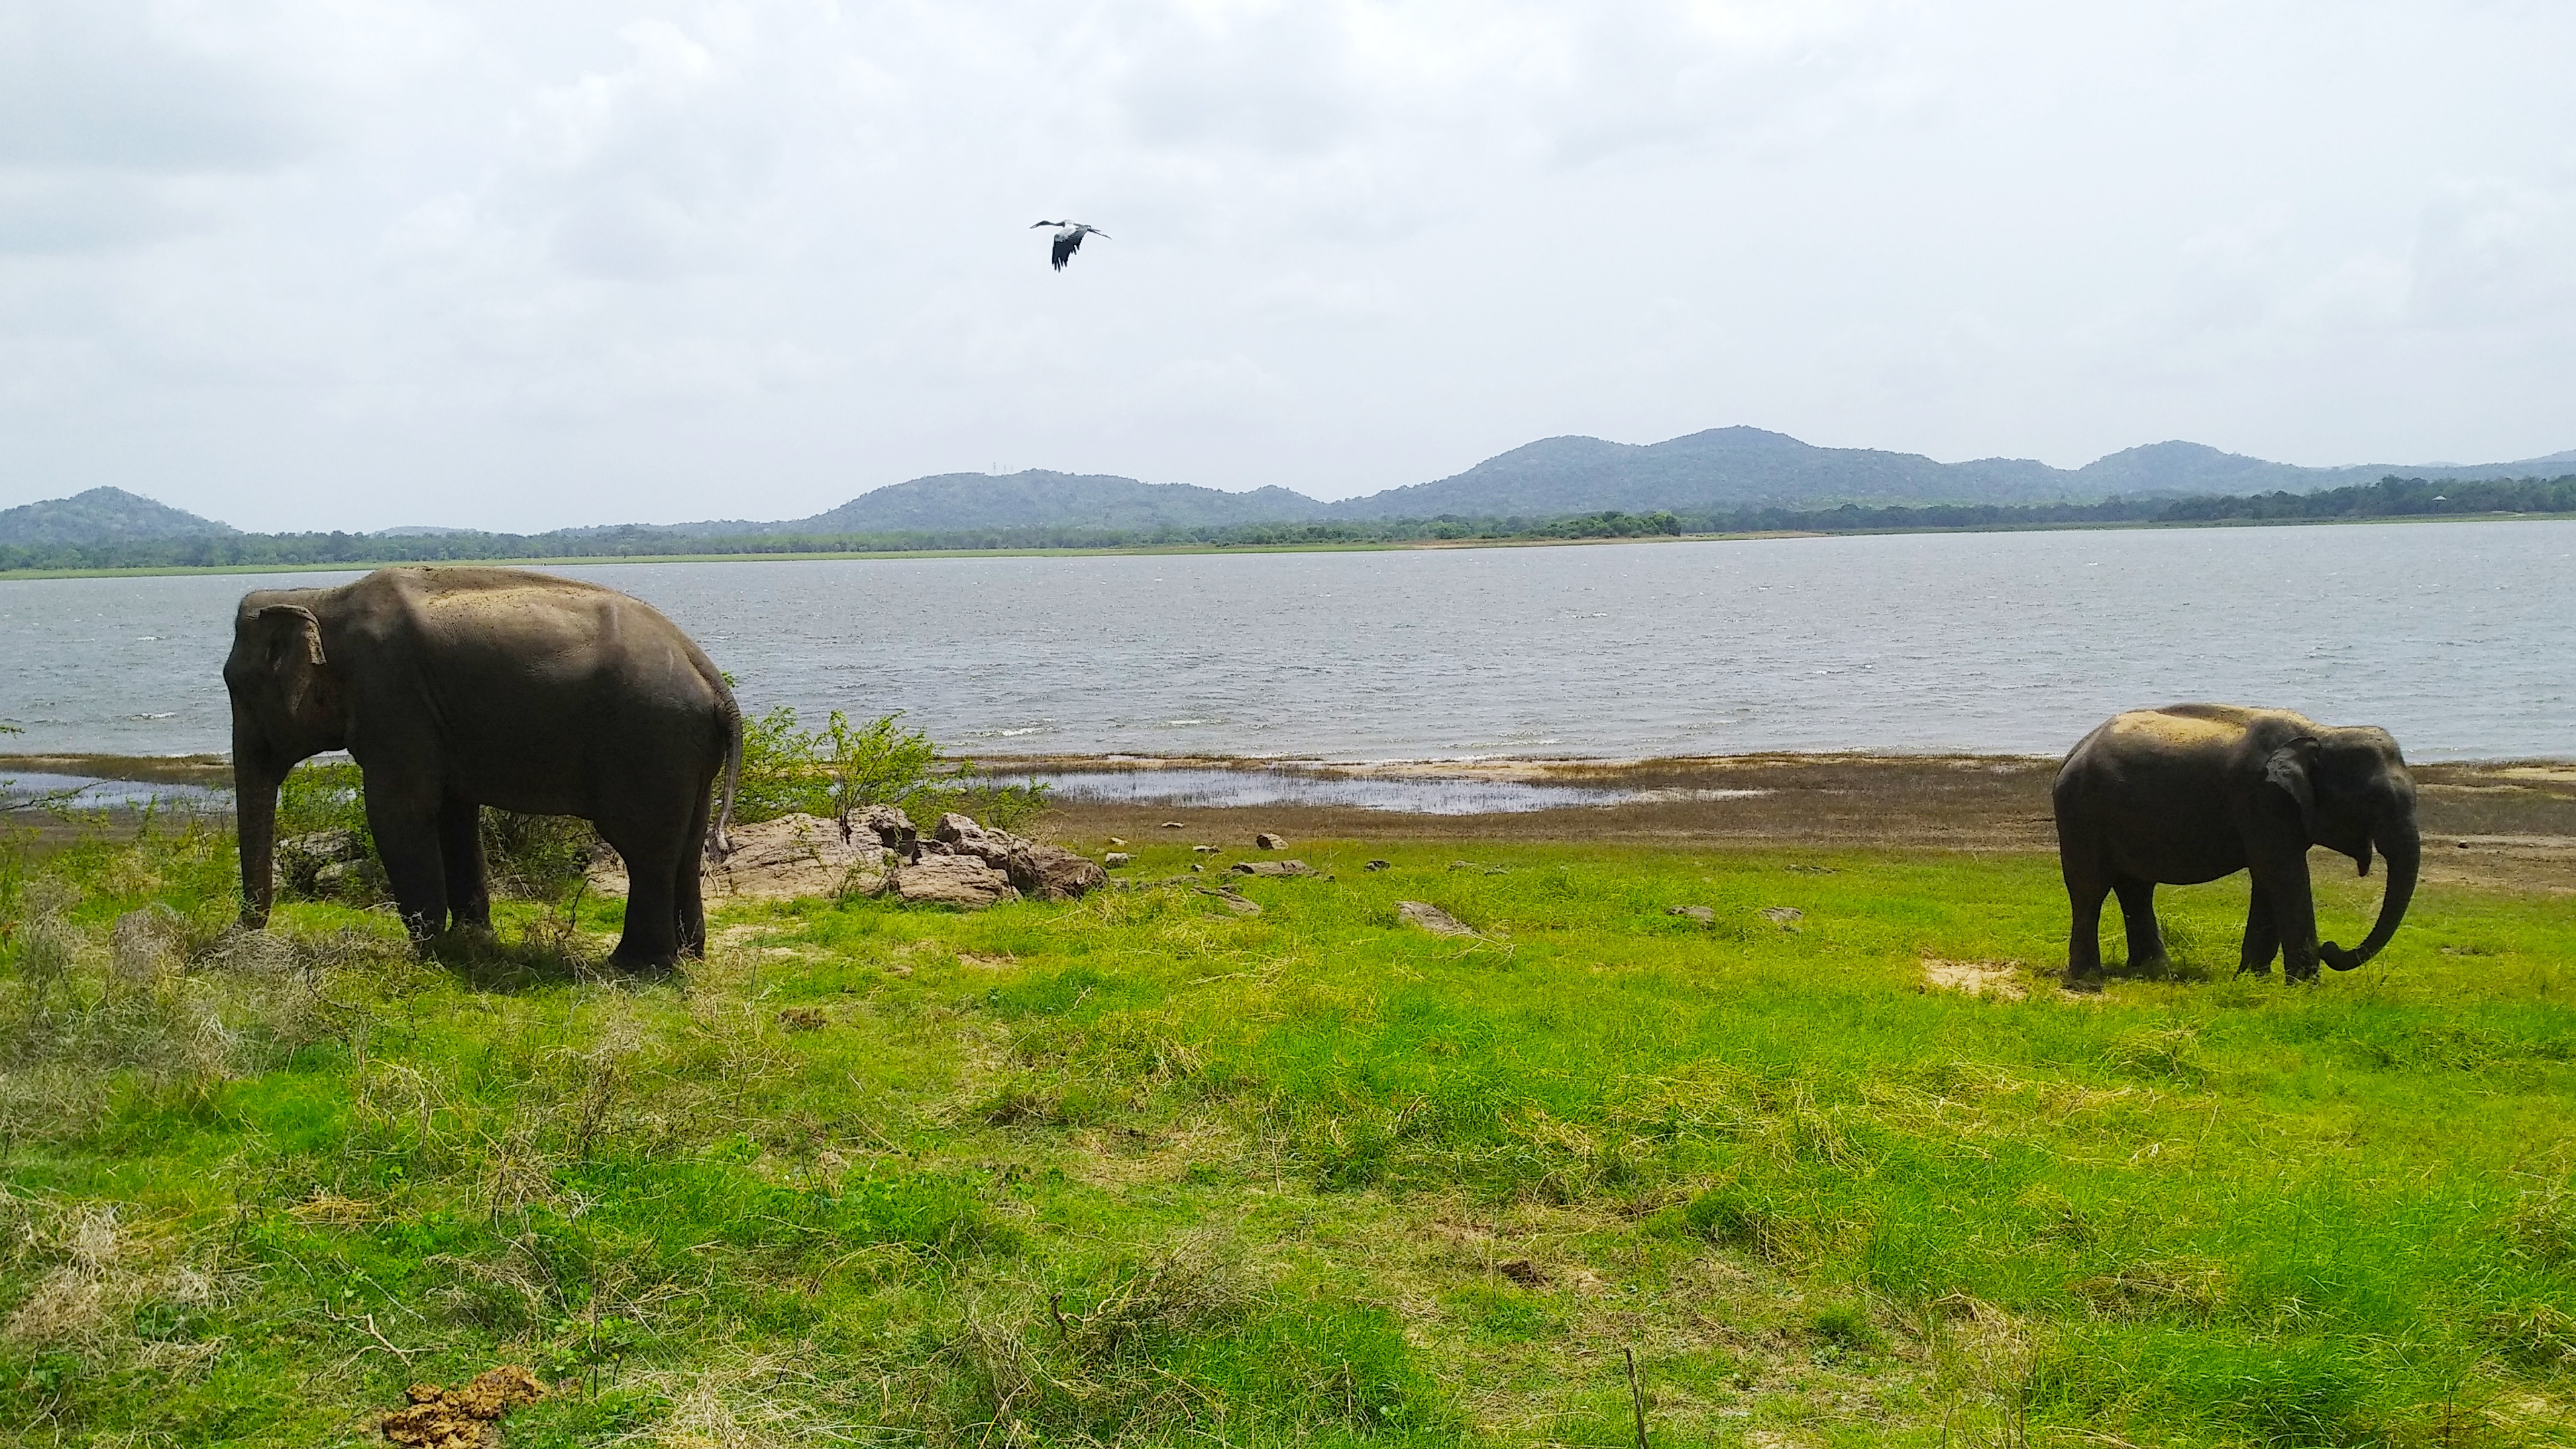 Sri Lanka - huge rock and tiny elephants #6